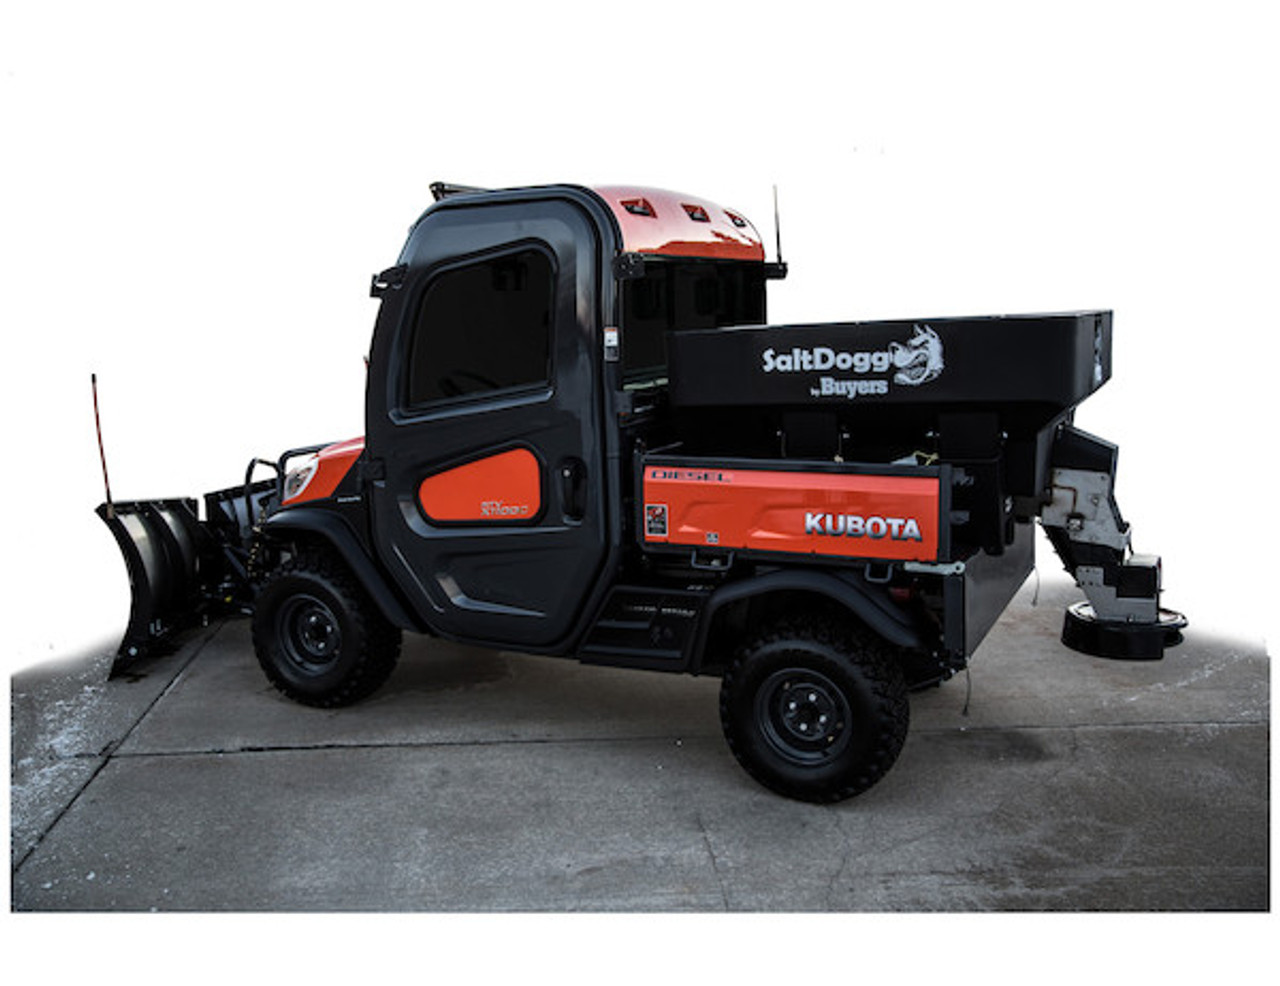 SHPE0750X BUYERS SALTDOGG ELECTRIC POLY HOPPER SPREADER WITH EXTENDED CHUTE